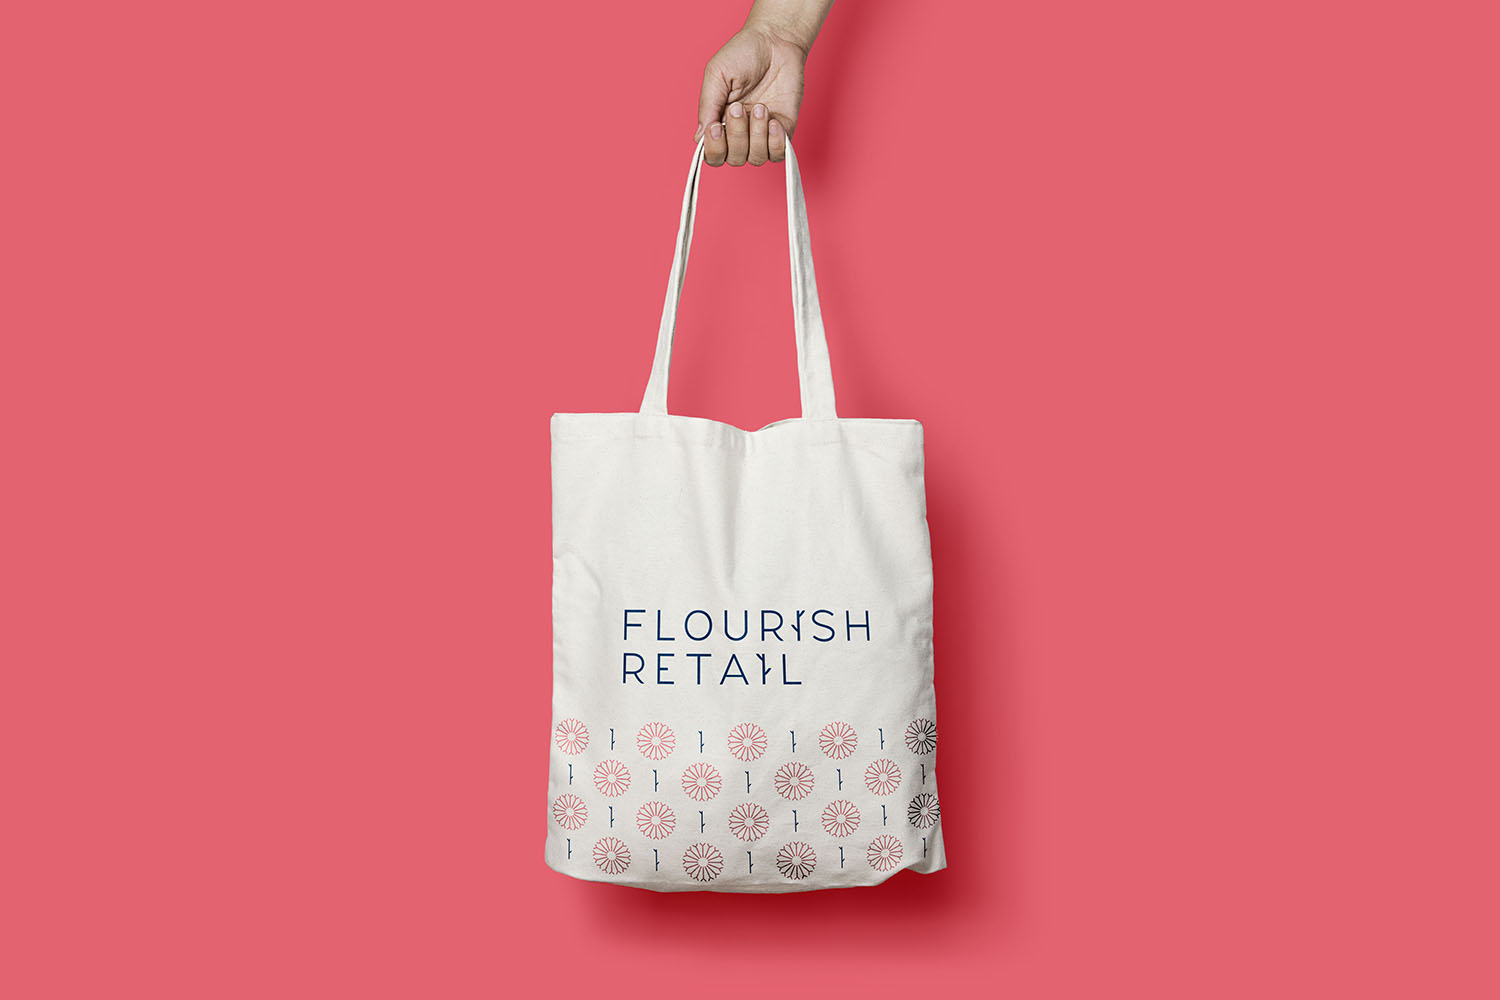 Portfolio project: Flourish Retail canvas bag design | Beehive Green Design Studio